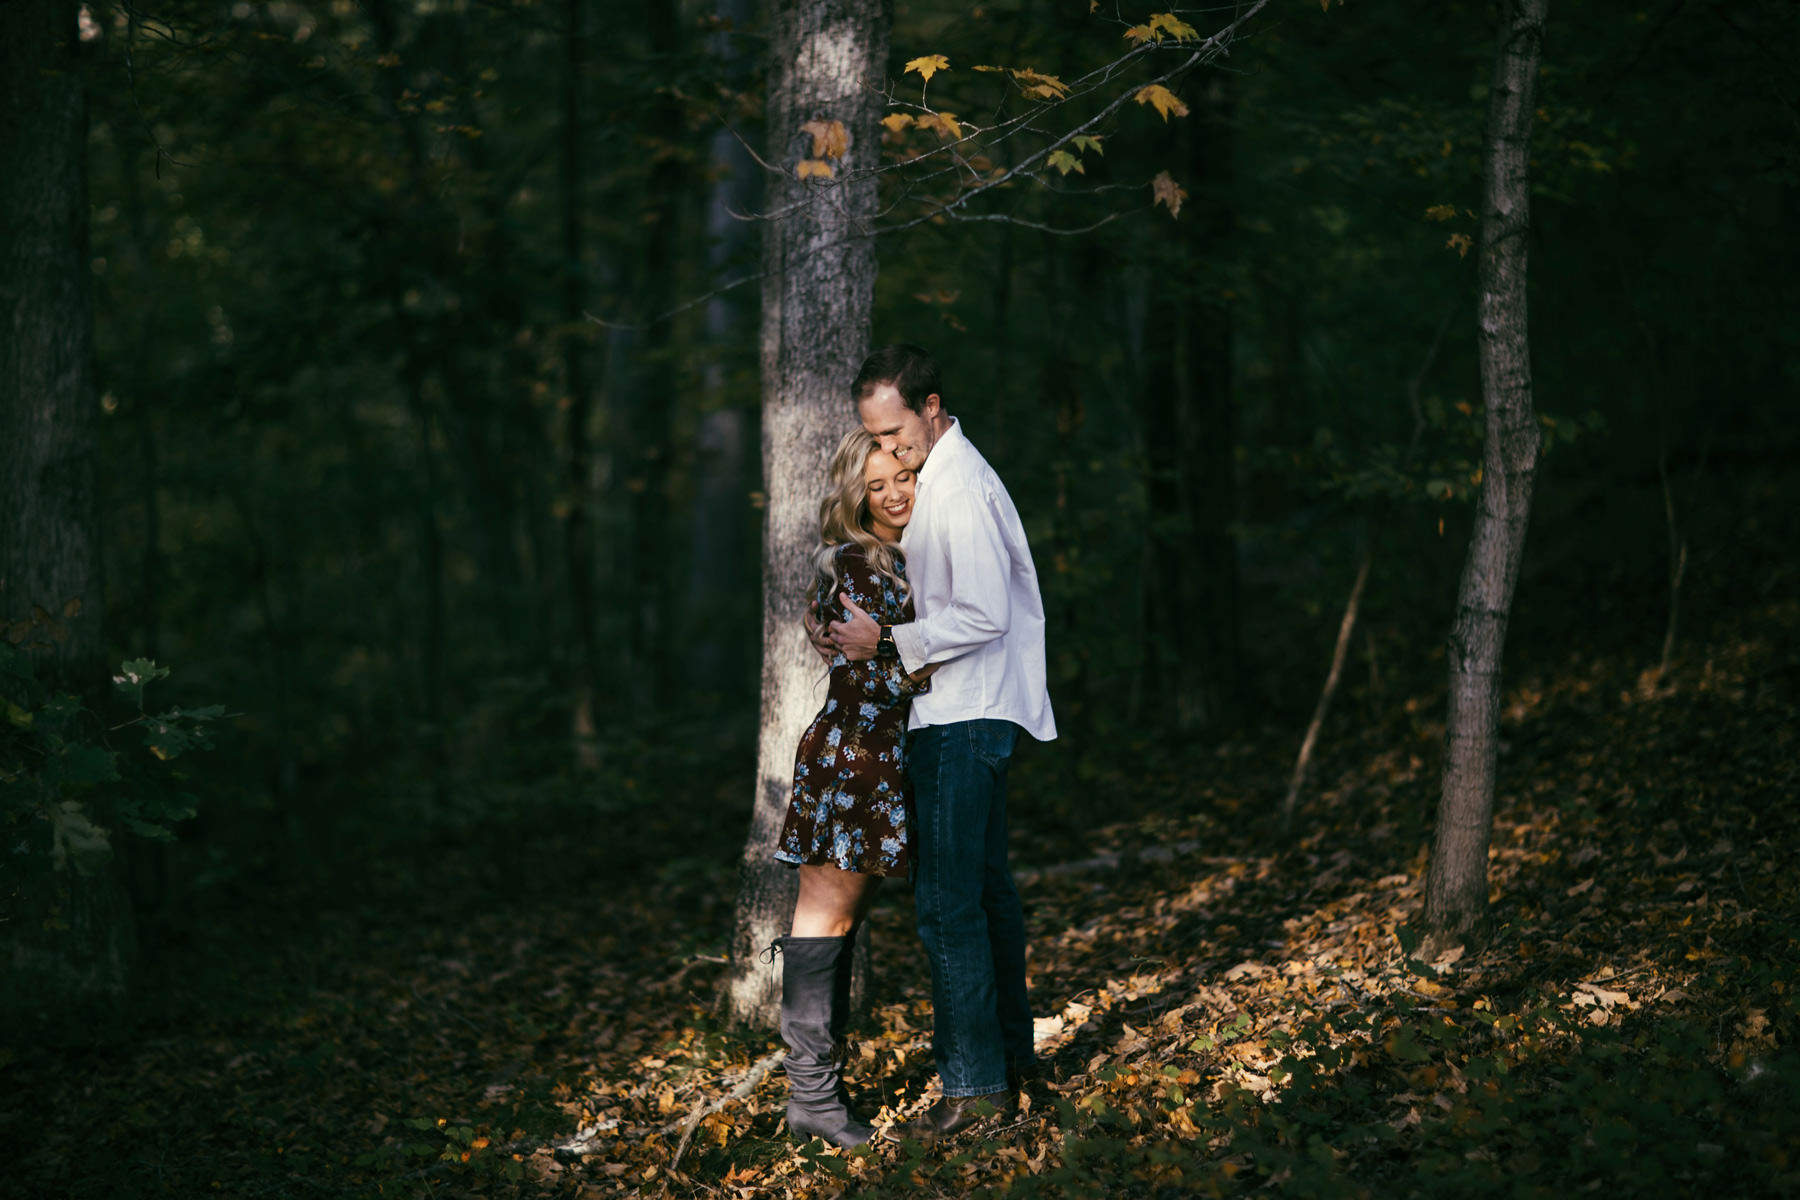 Castlewood State Park_Engagement Photos_Kindling Wedding Photography Blog02.JPG